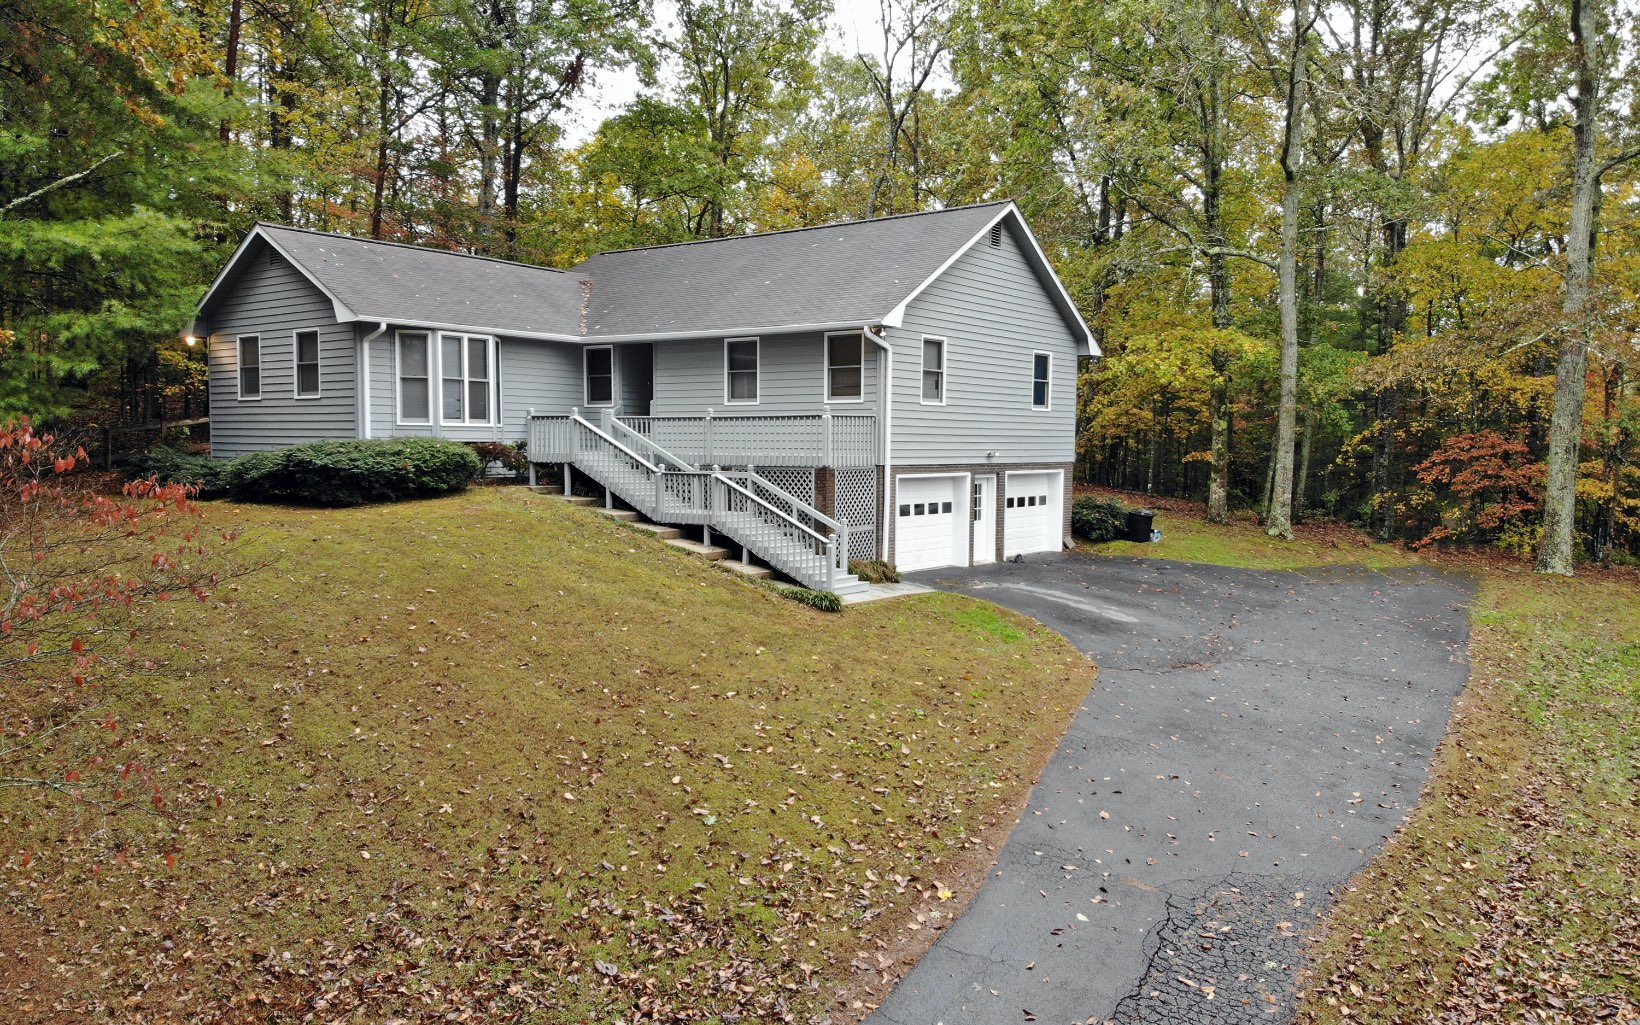 Homes & Land for Sale in Western North Carolina & North ... on